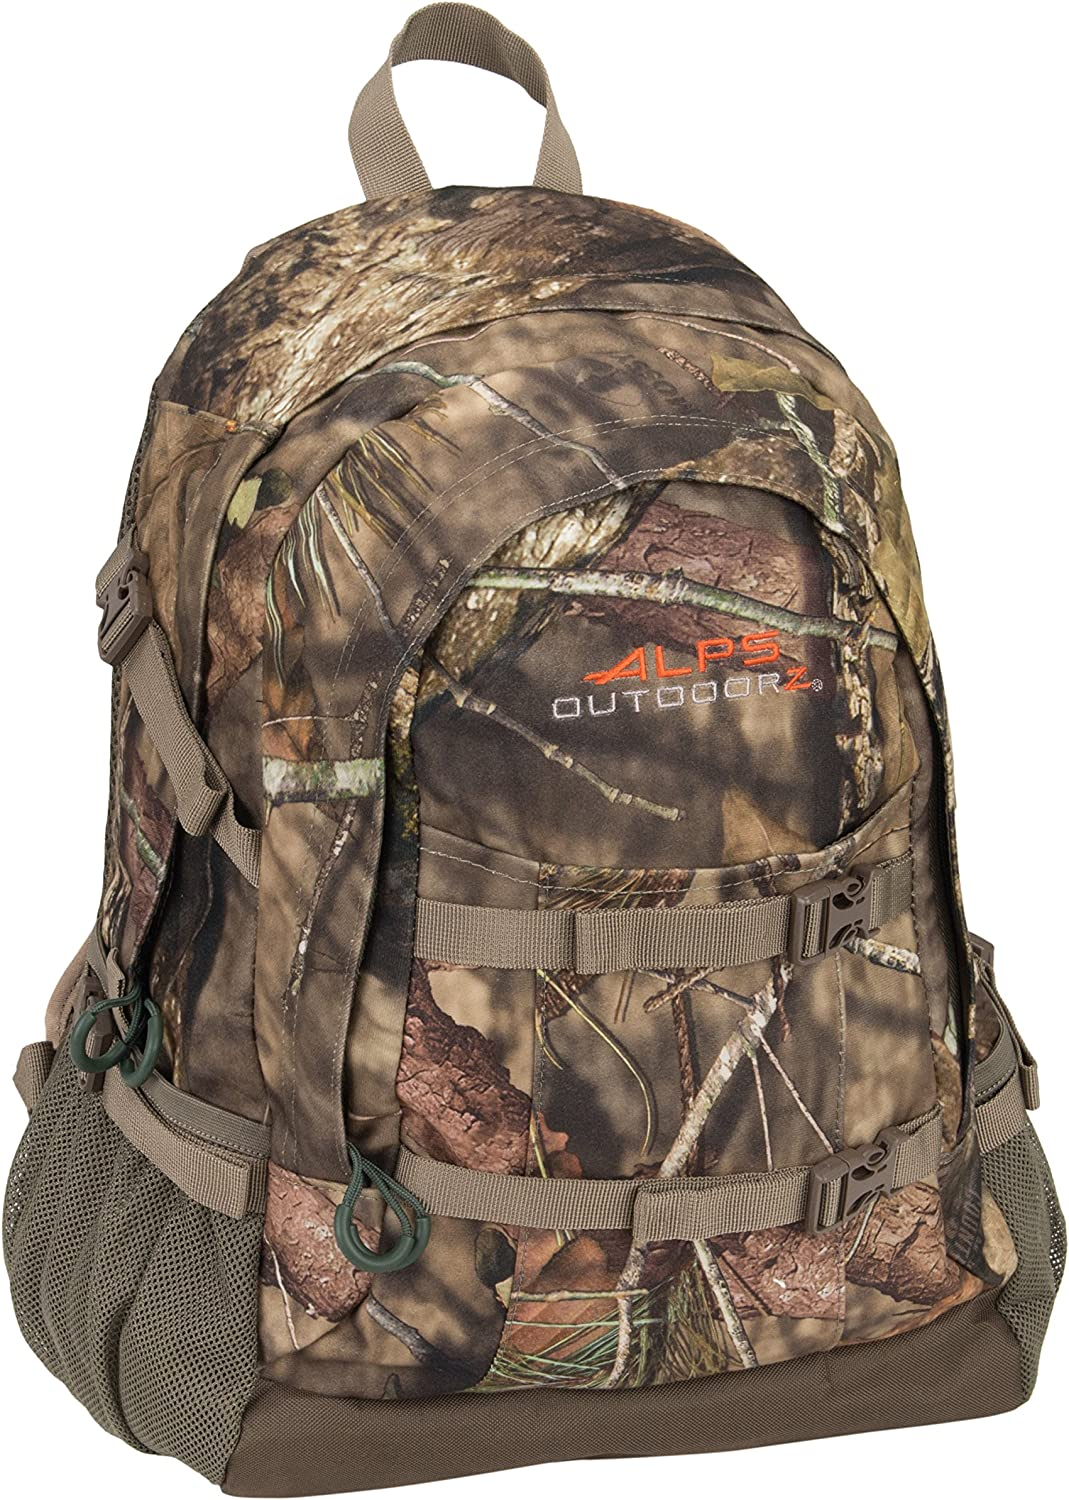 Crossbuck Hunting Backpack